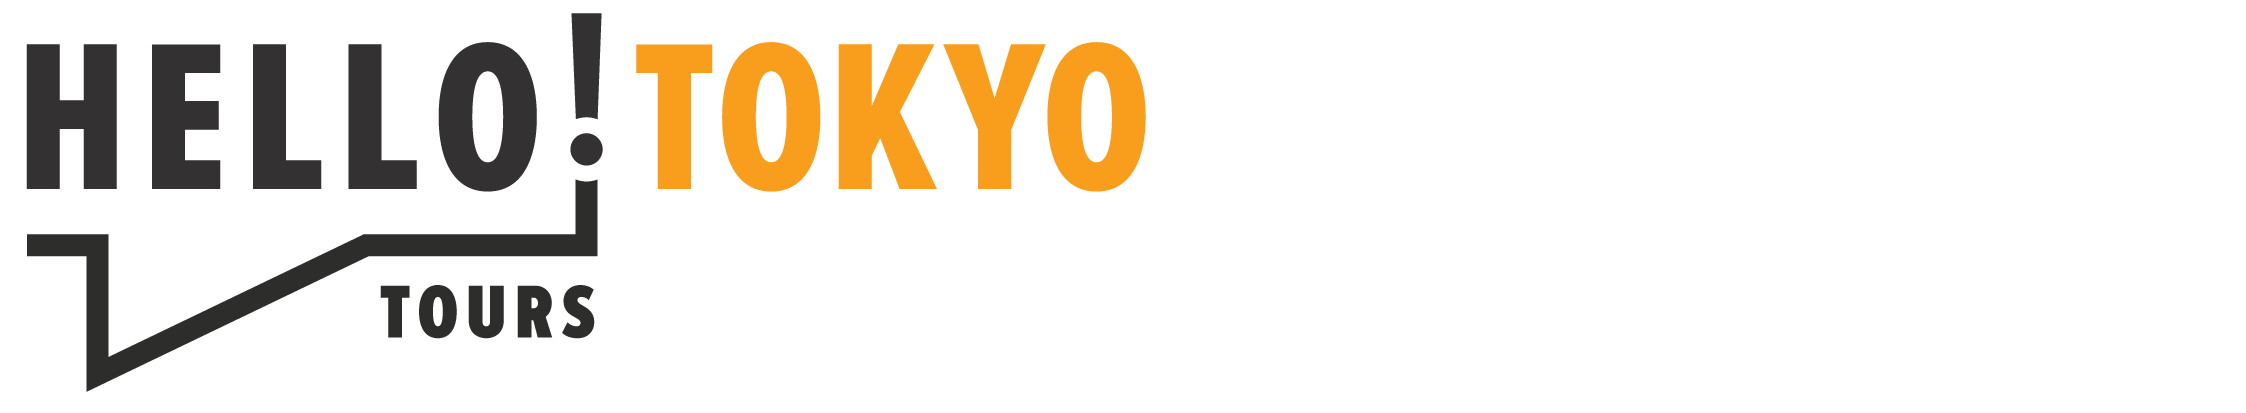 hello Tokyo test-01.png